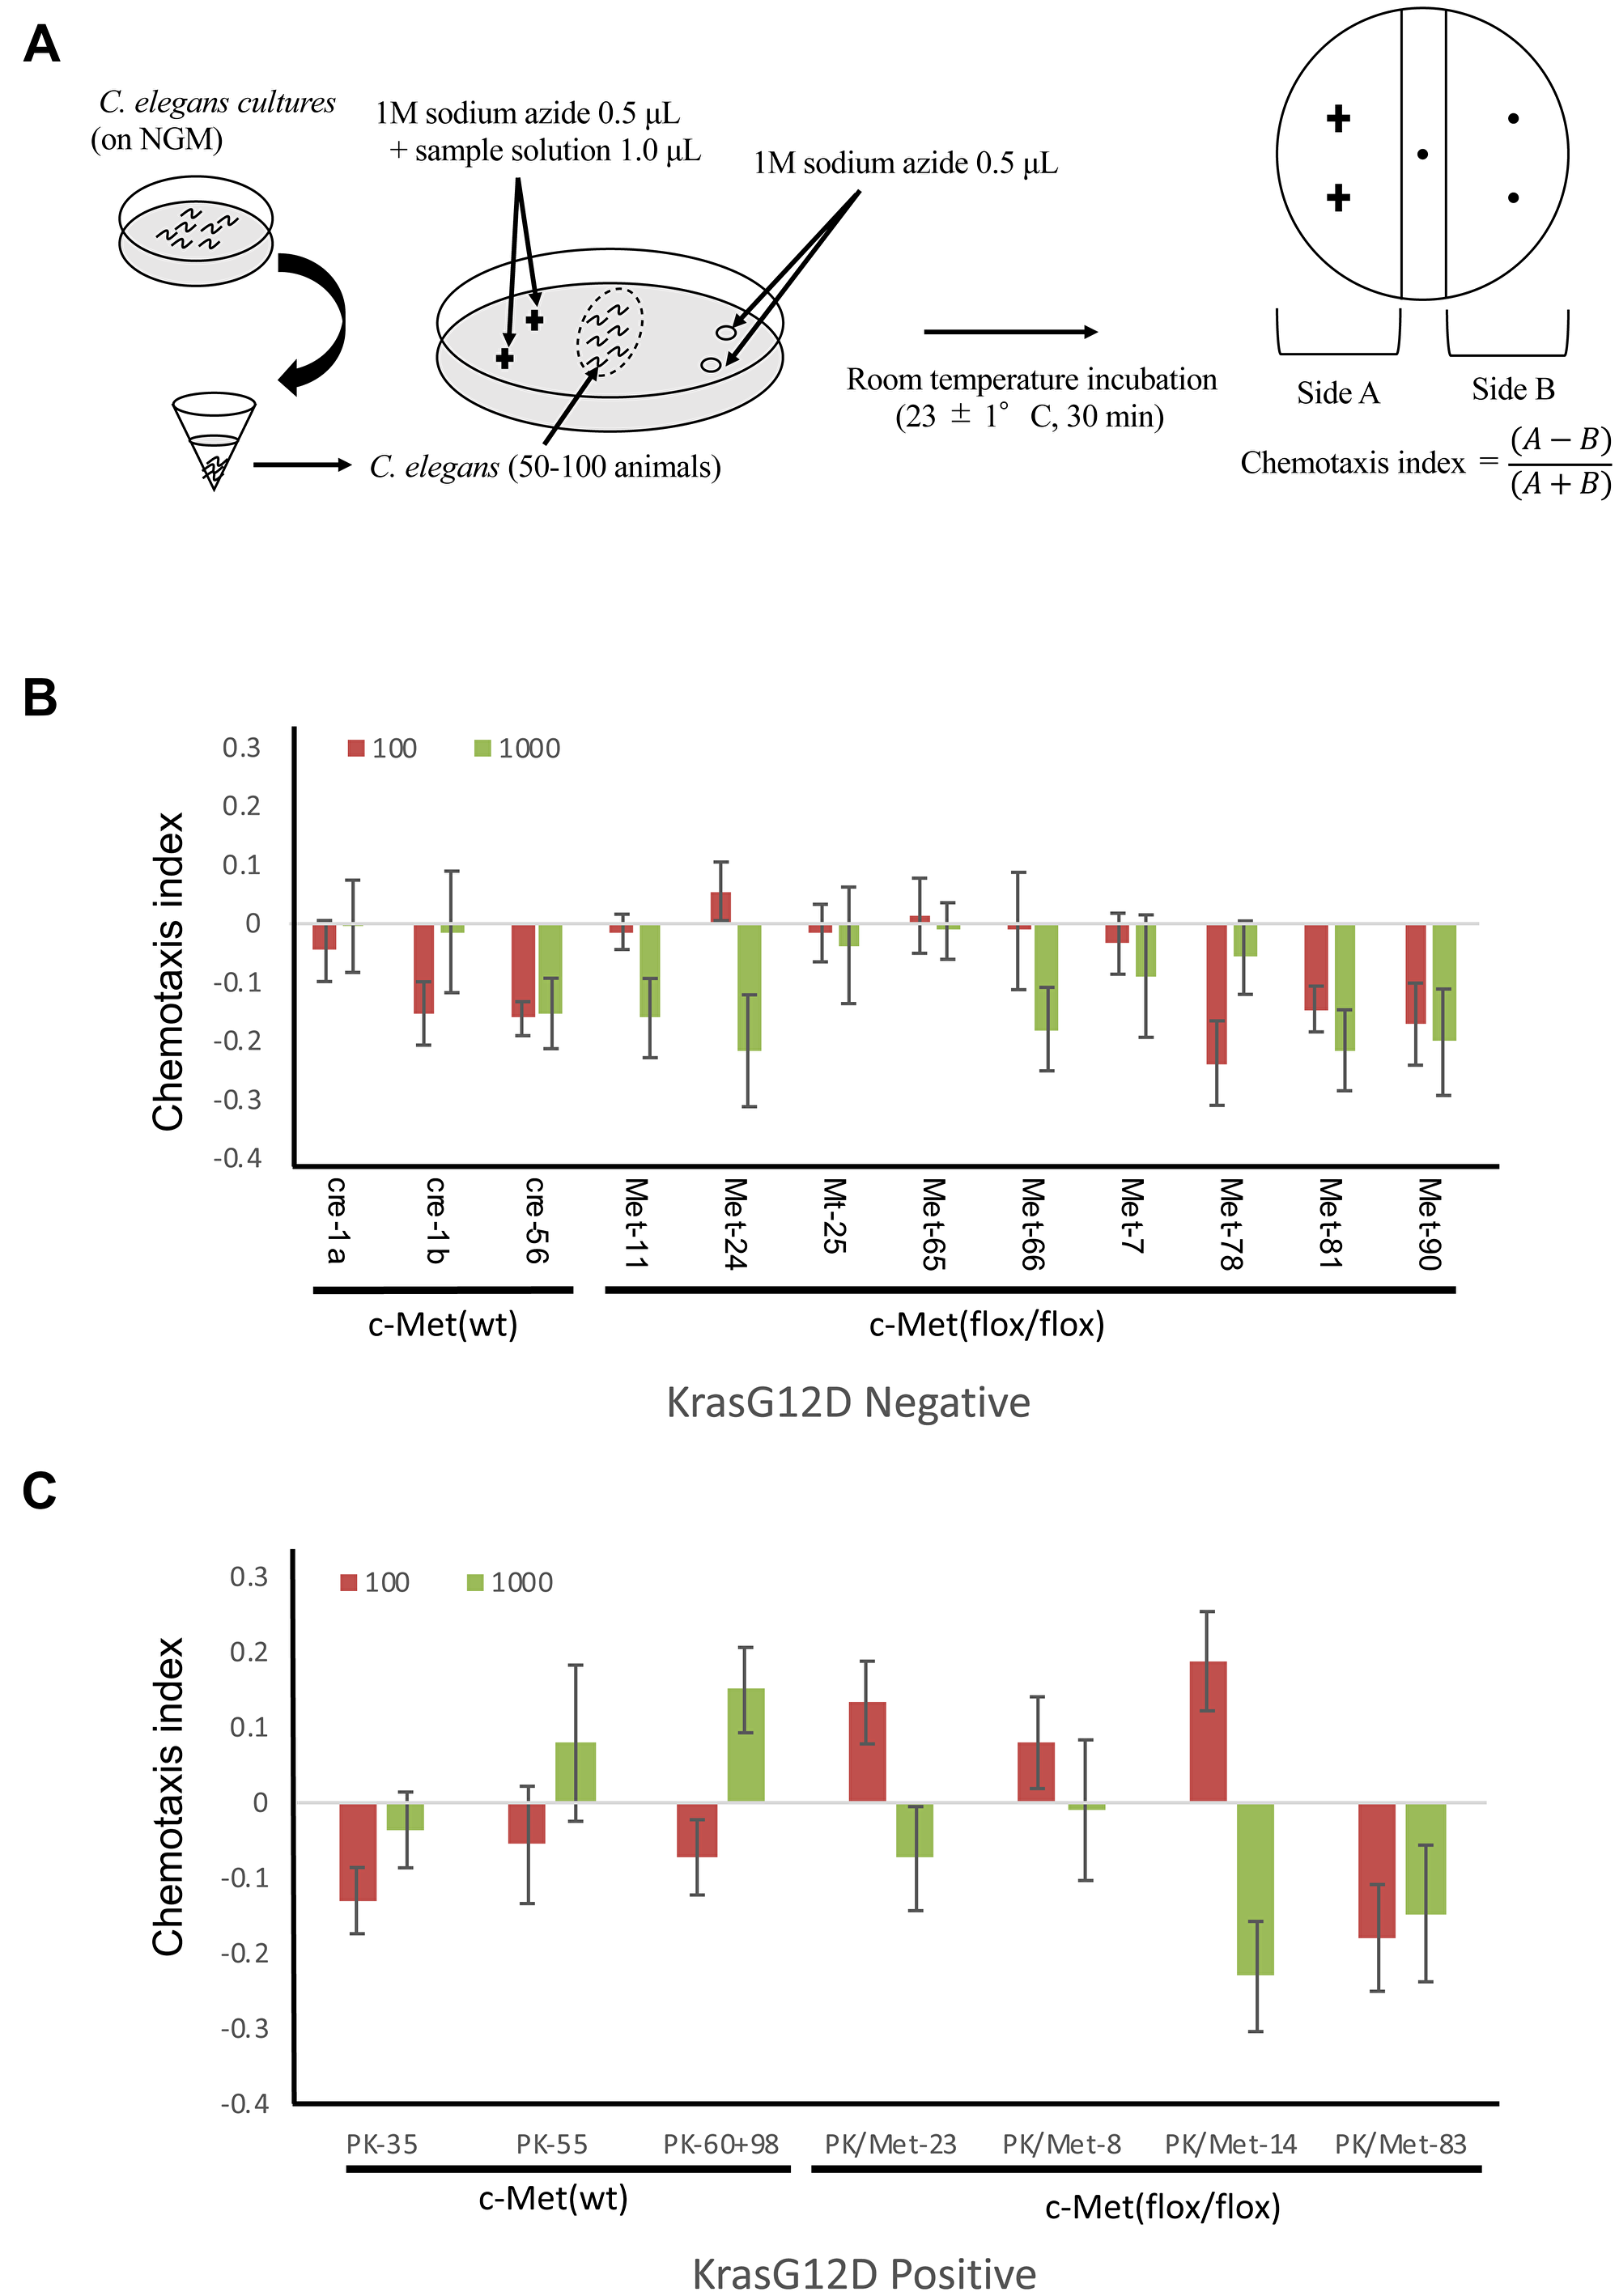 Detection of tumor in mice by C. elegans scent.